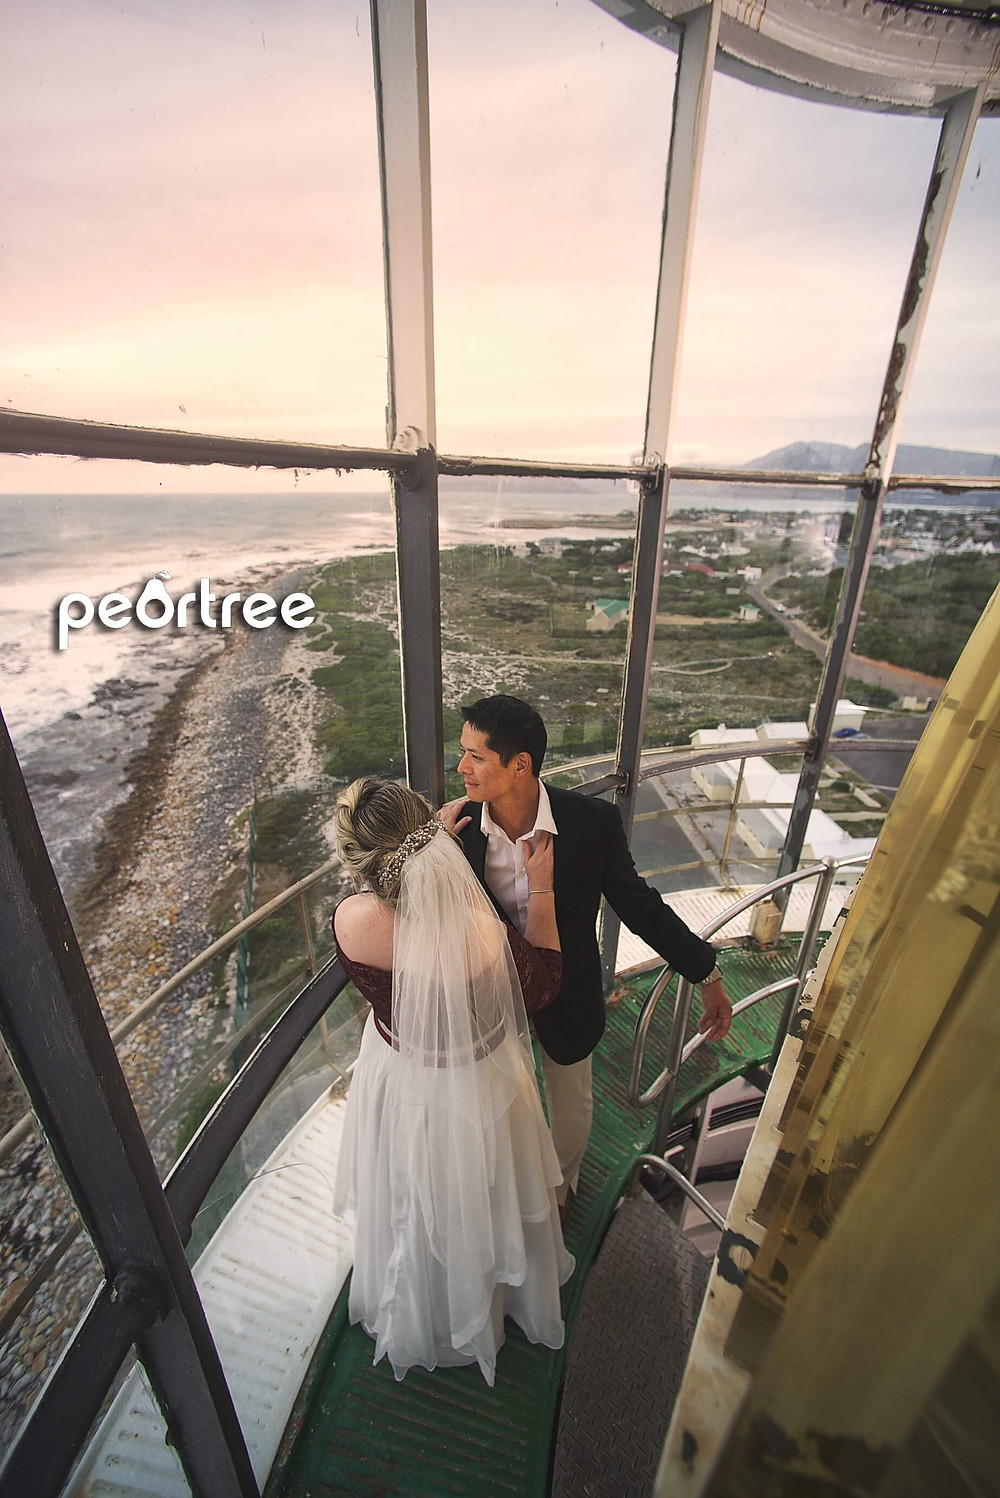 lighthouse wedding slangkop kommetjie